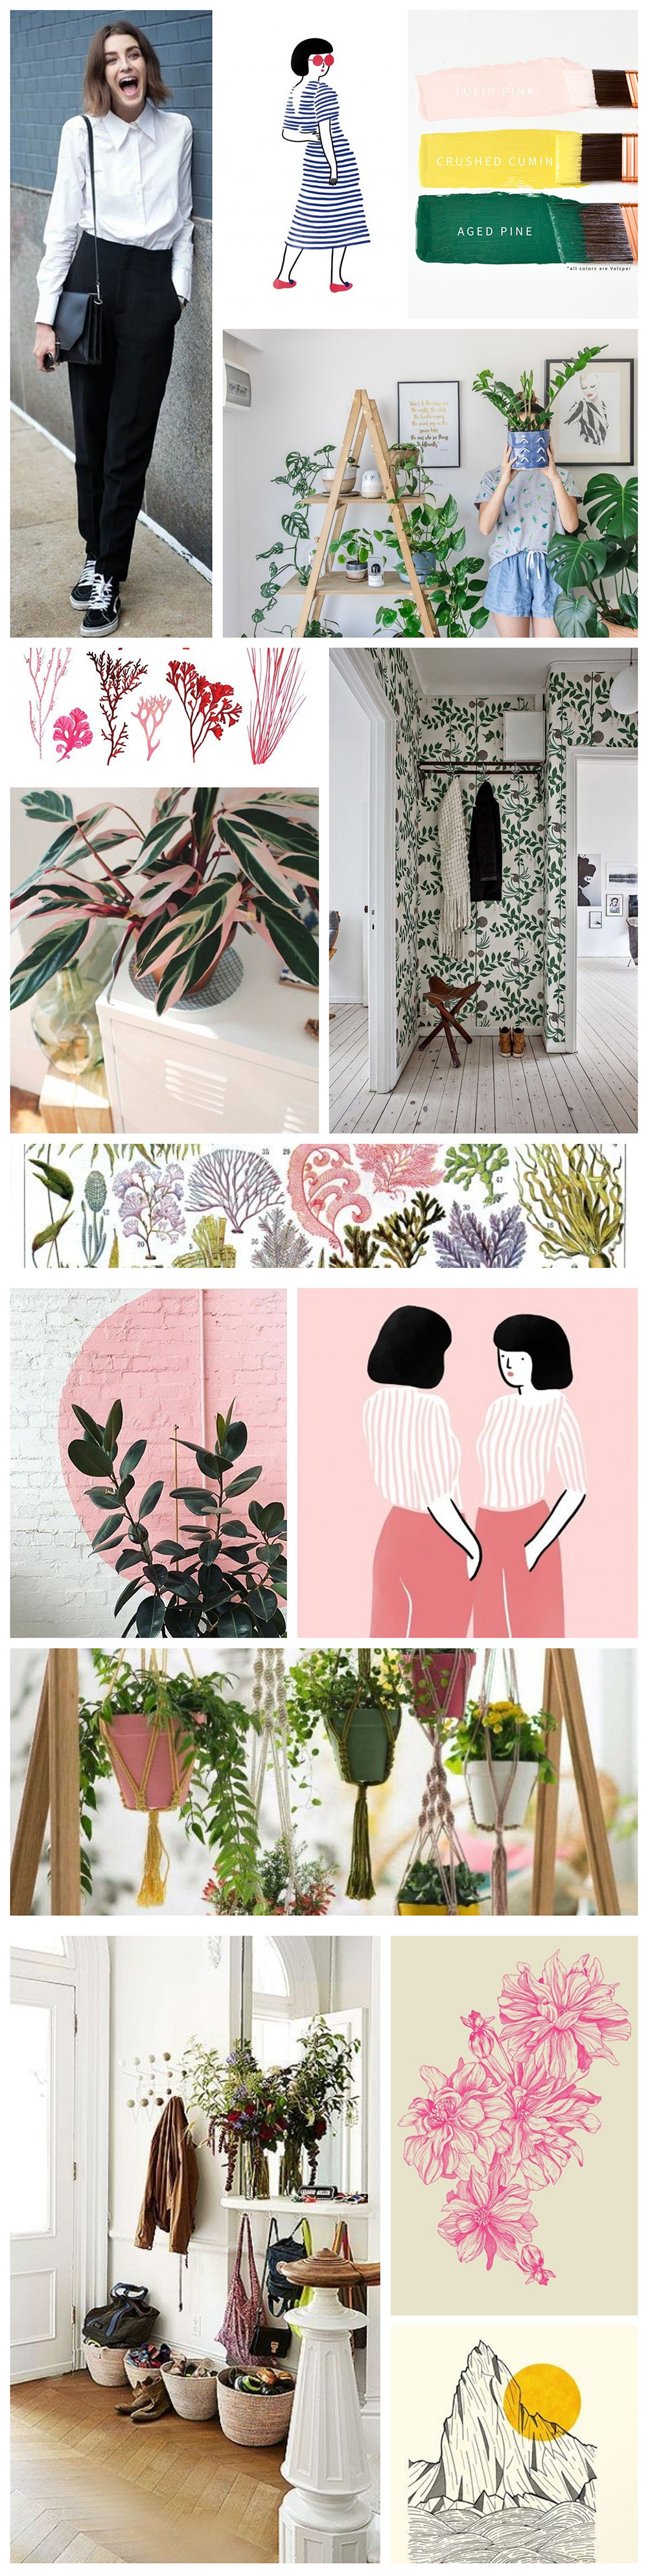 ruedelindustrie-moodboard-inspiration-7-novembre